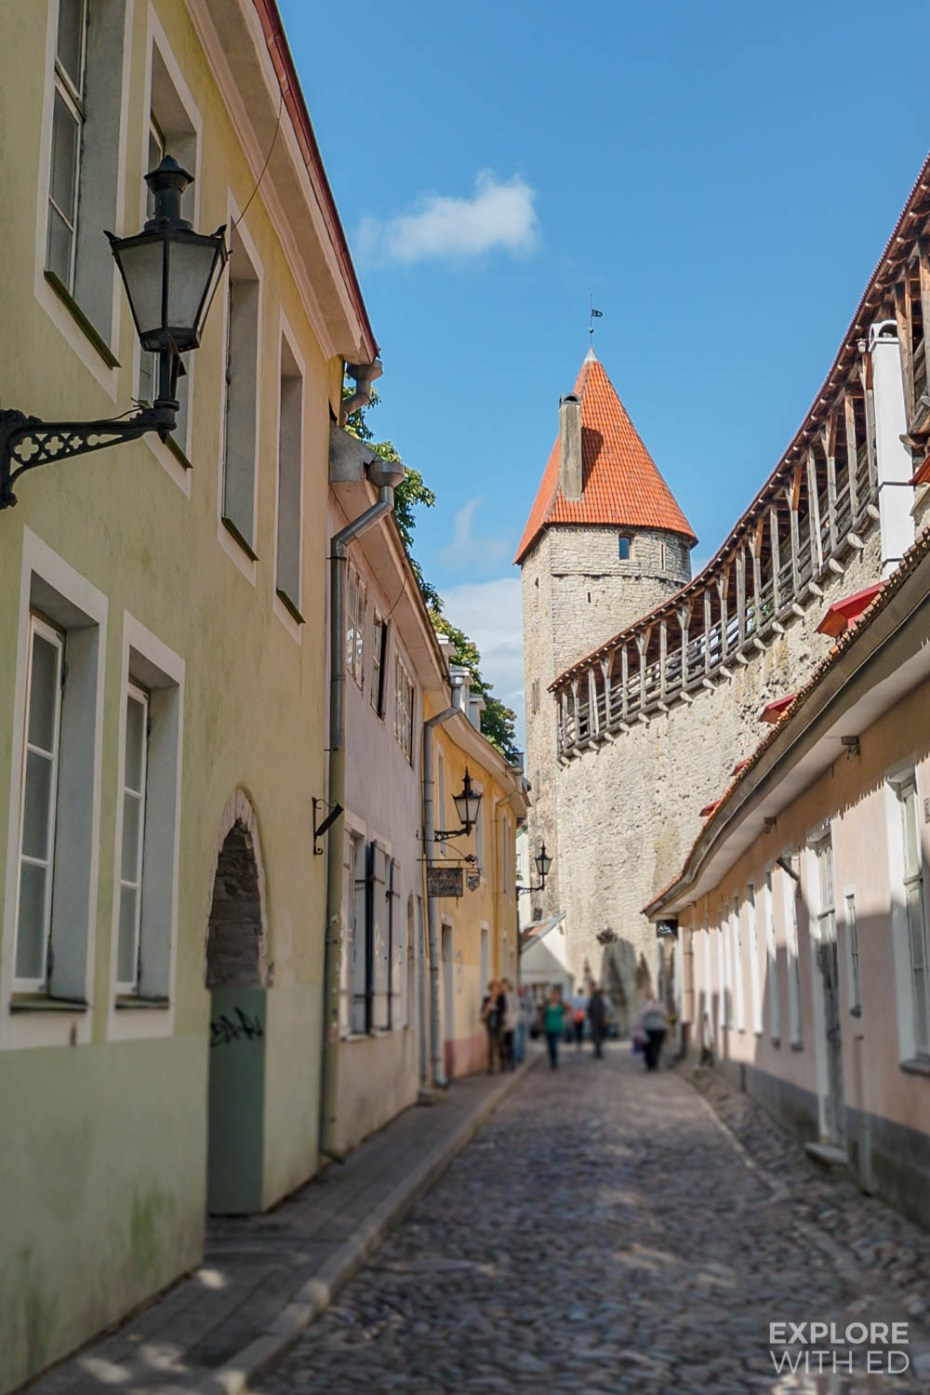 The Hellemann Tower and Town Wall Walkway overlooking Tallinn's streets